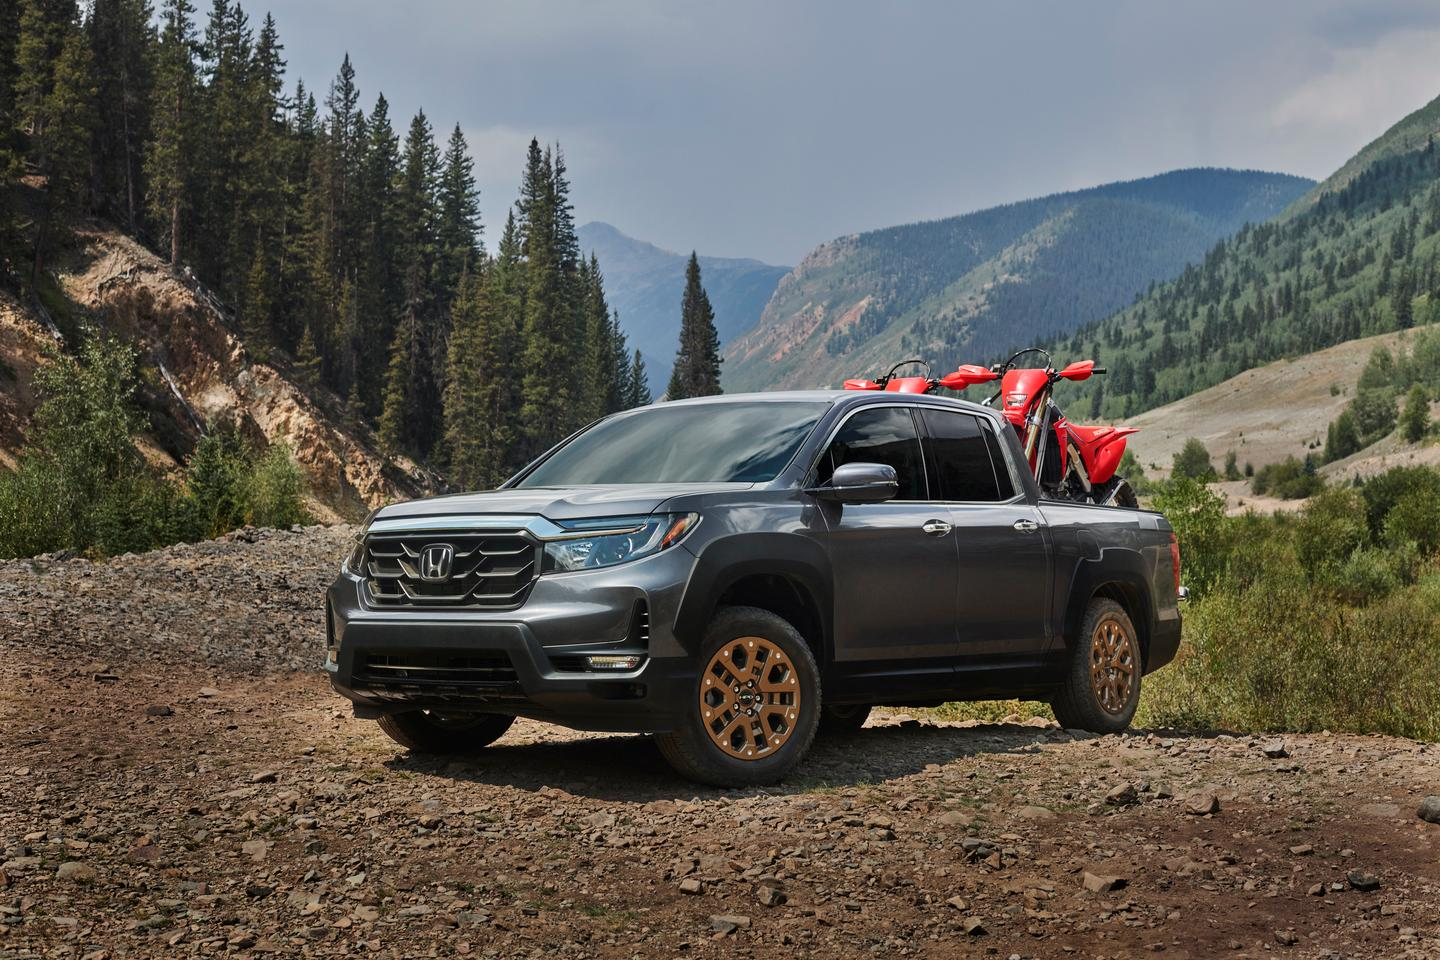 With the 2021 Ridgeline, Honda really wants to emphasize the truck's ruggedness